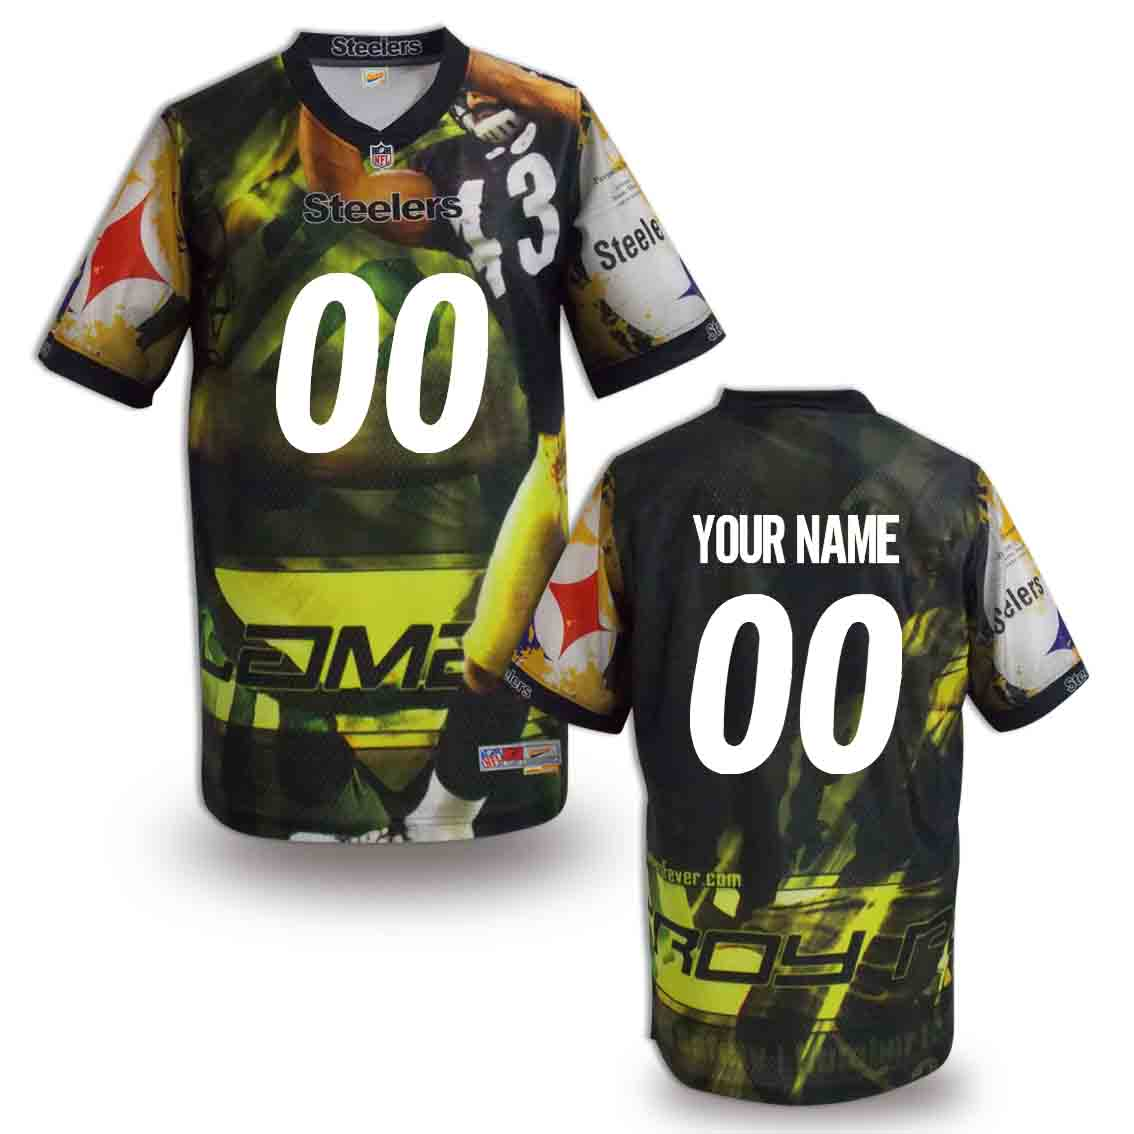 Nike Steelers Customized Fashion Stitched Jerseys01